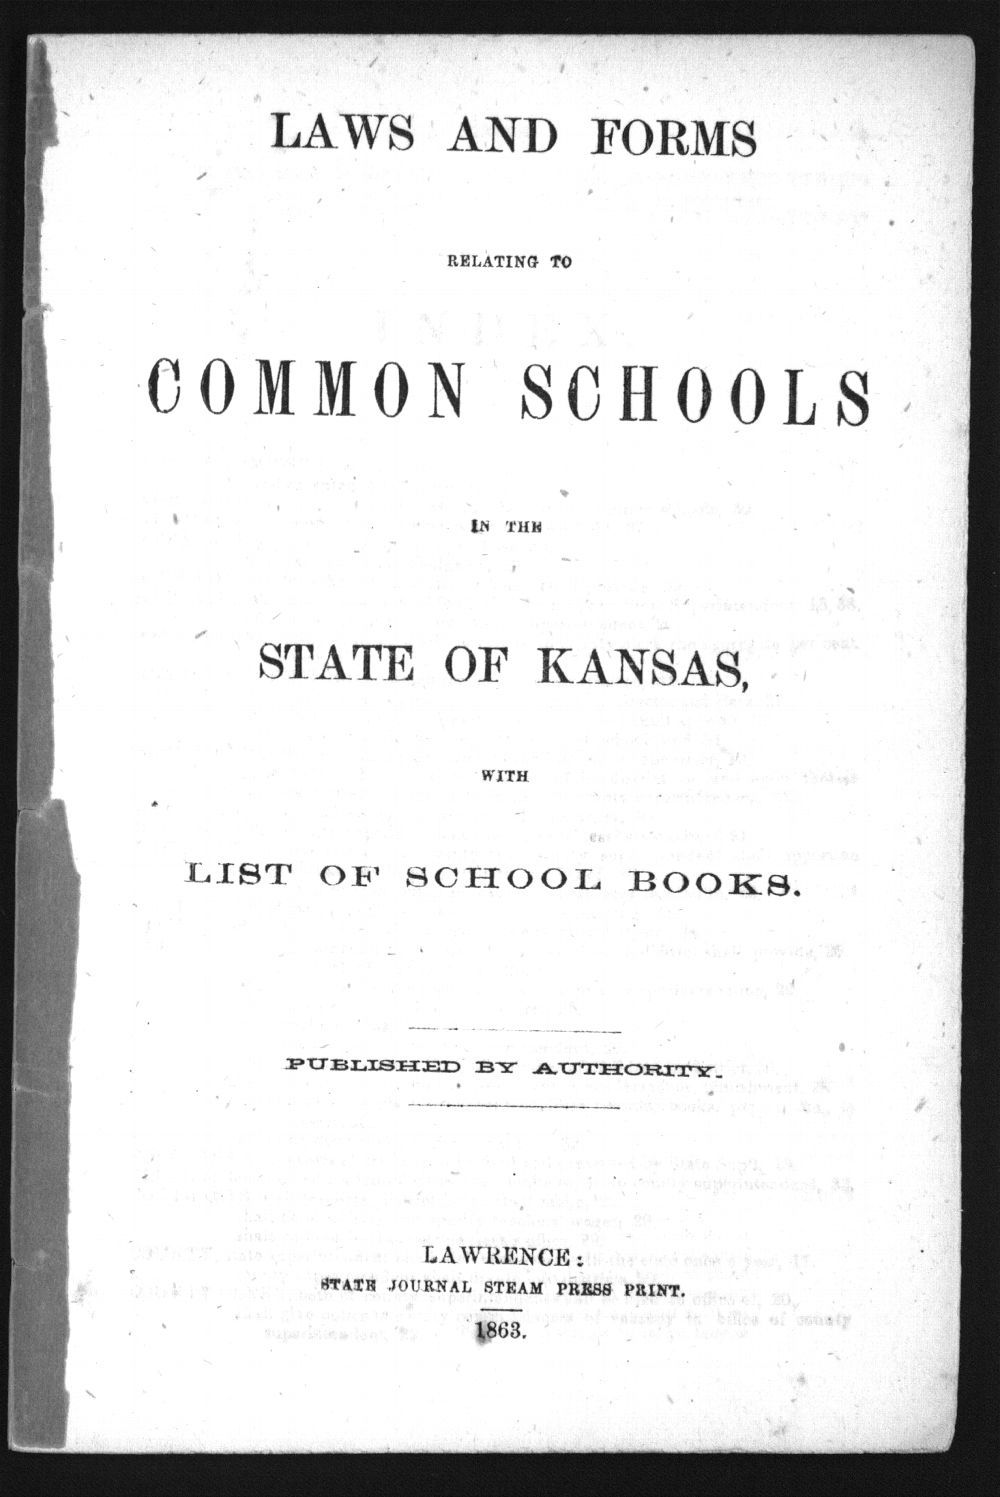 Laws and forms relating to common schools in the state of Kansas - Title Page